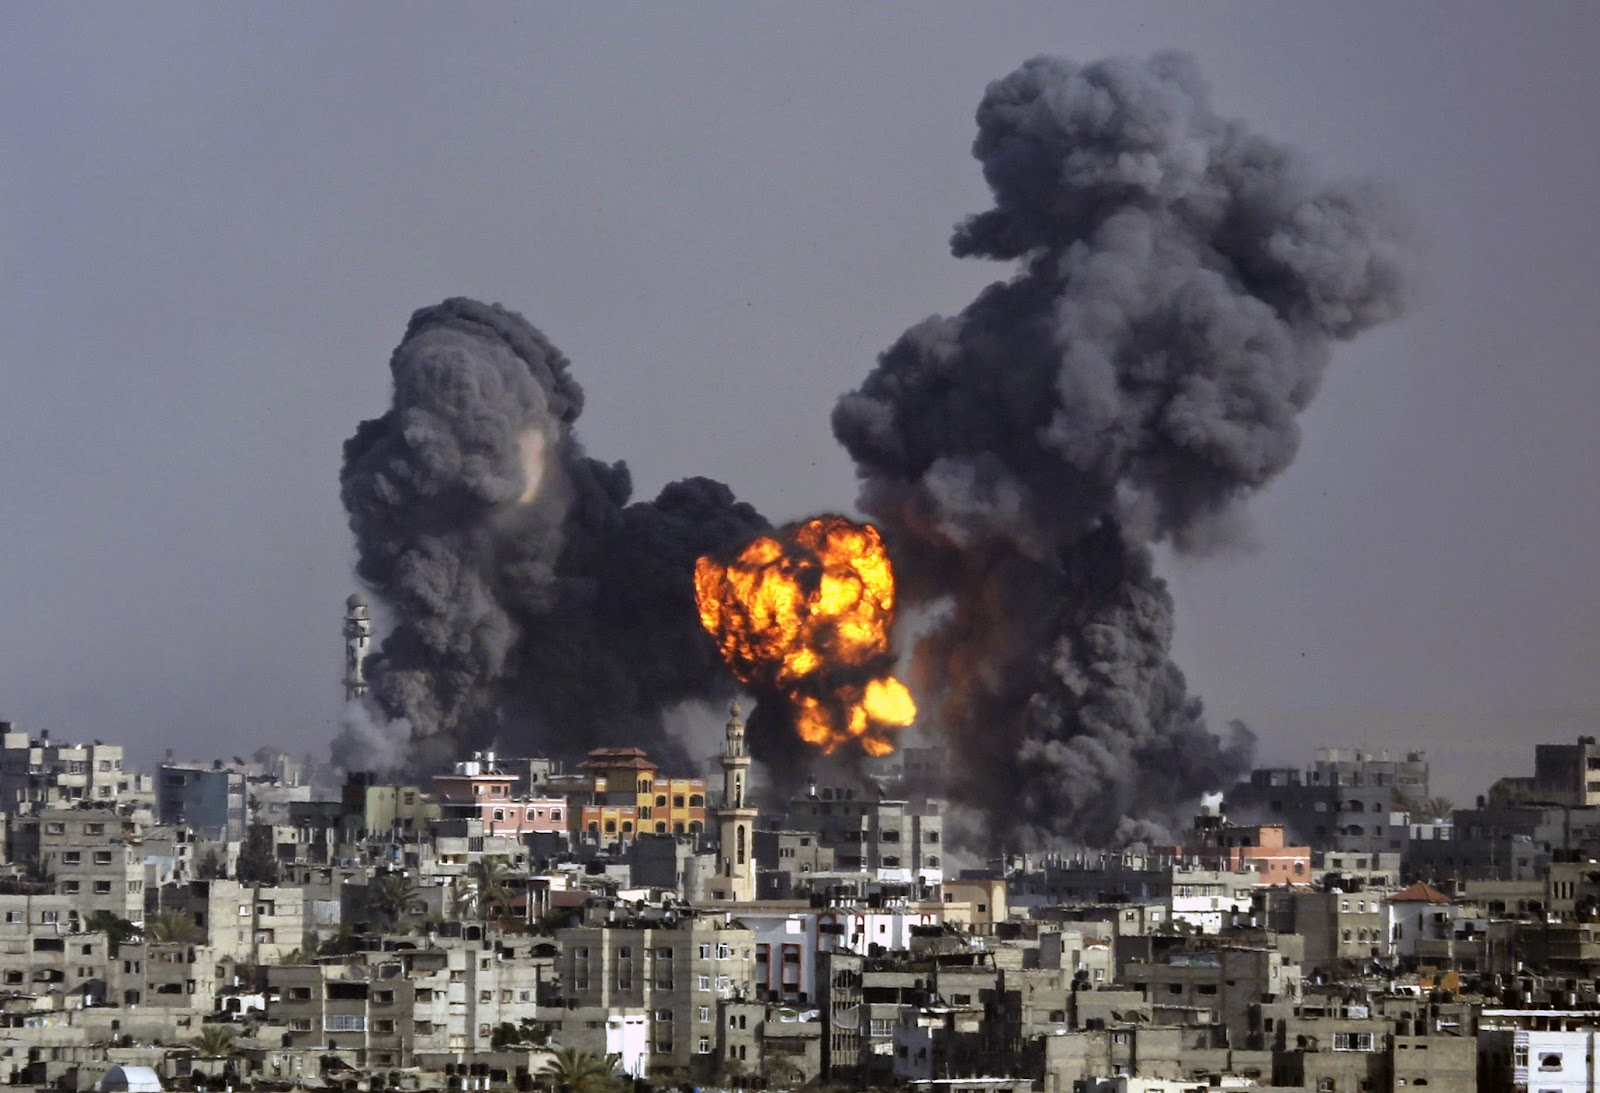 Smoke and fire from the explosion of an Israeli strike rise over Gaza City, Tuesday July 22. Hatem Moussa.